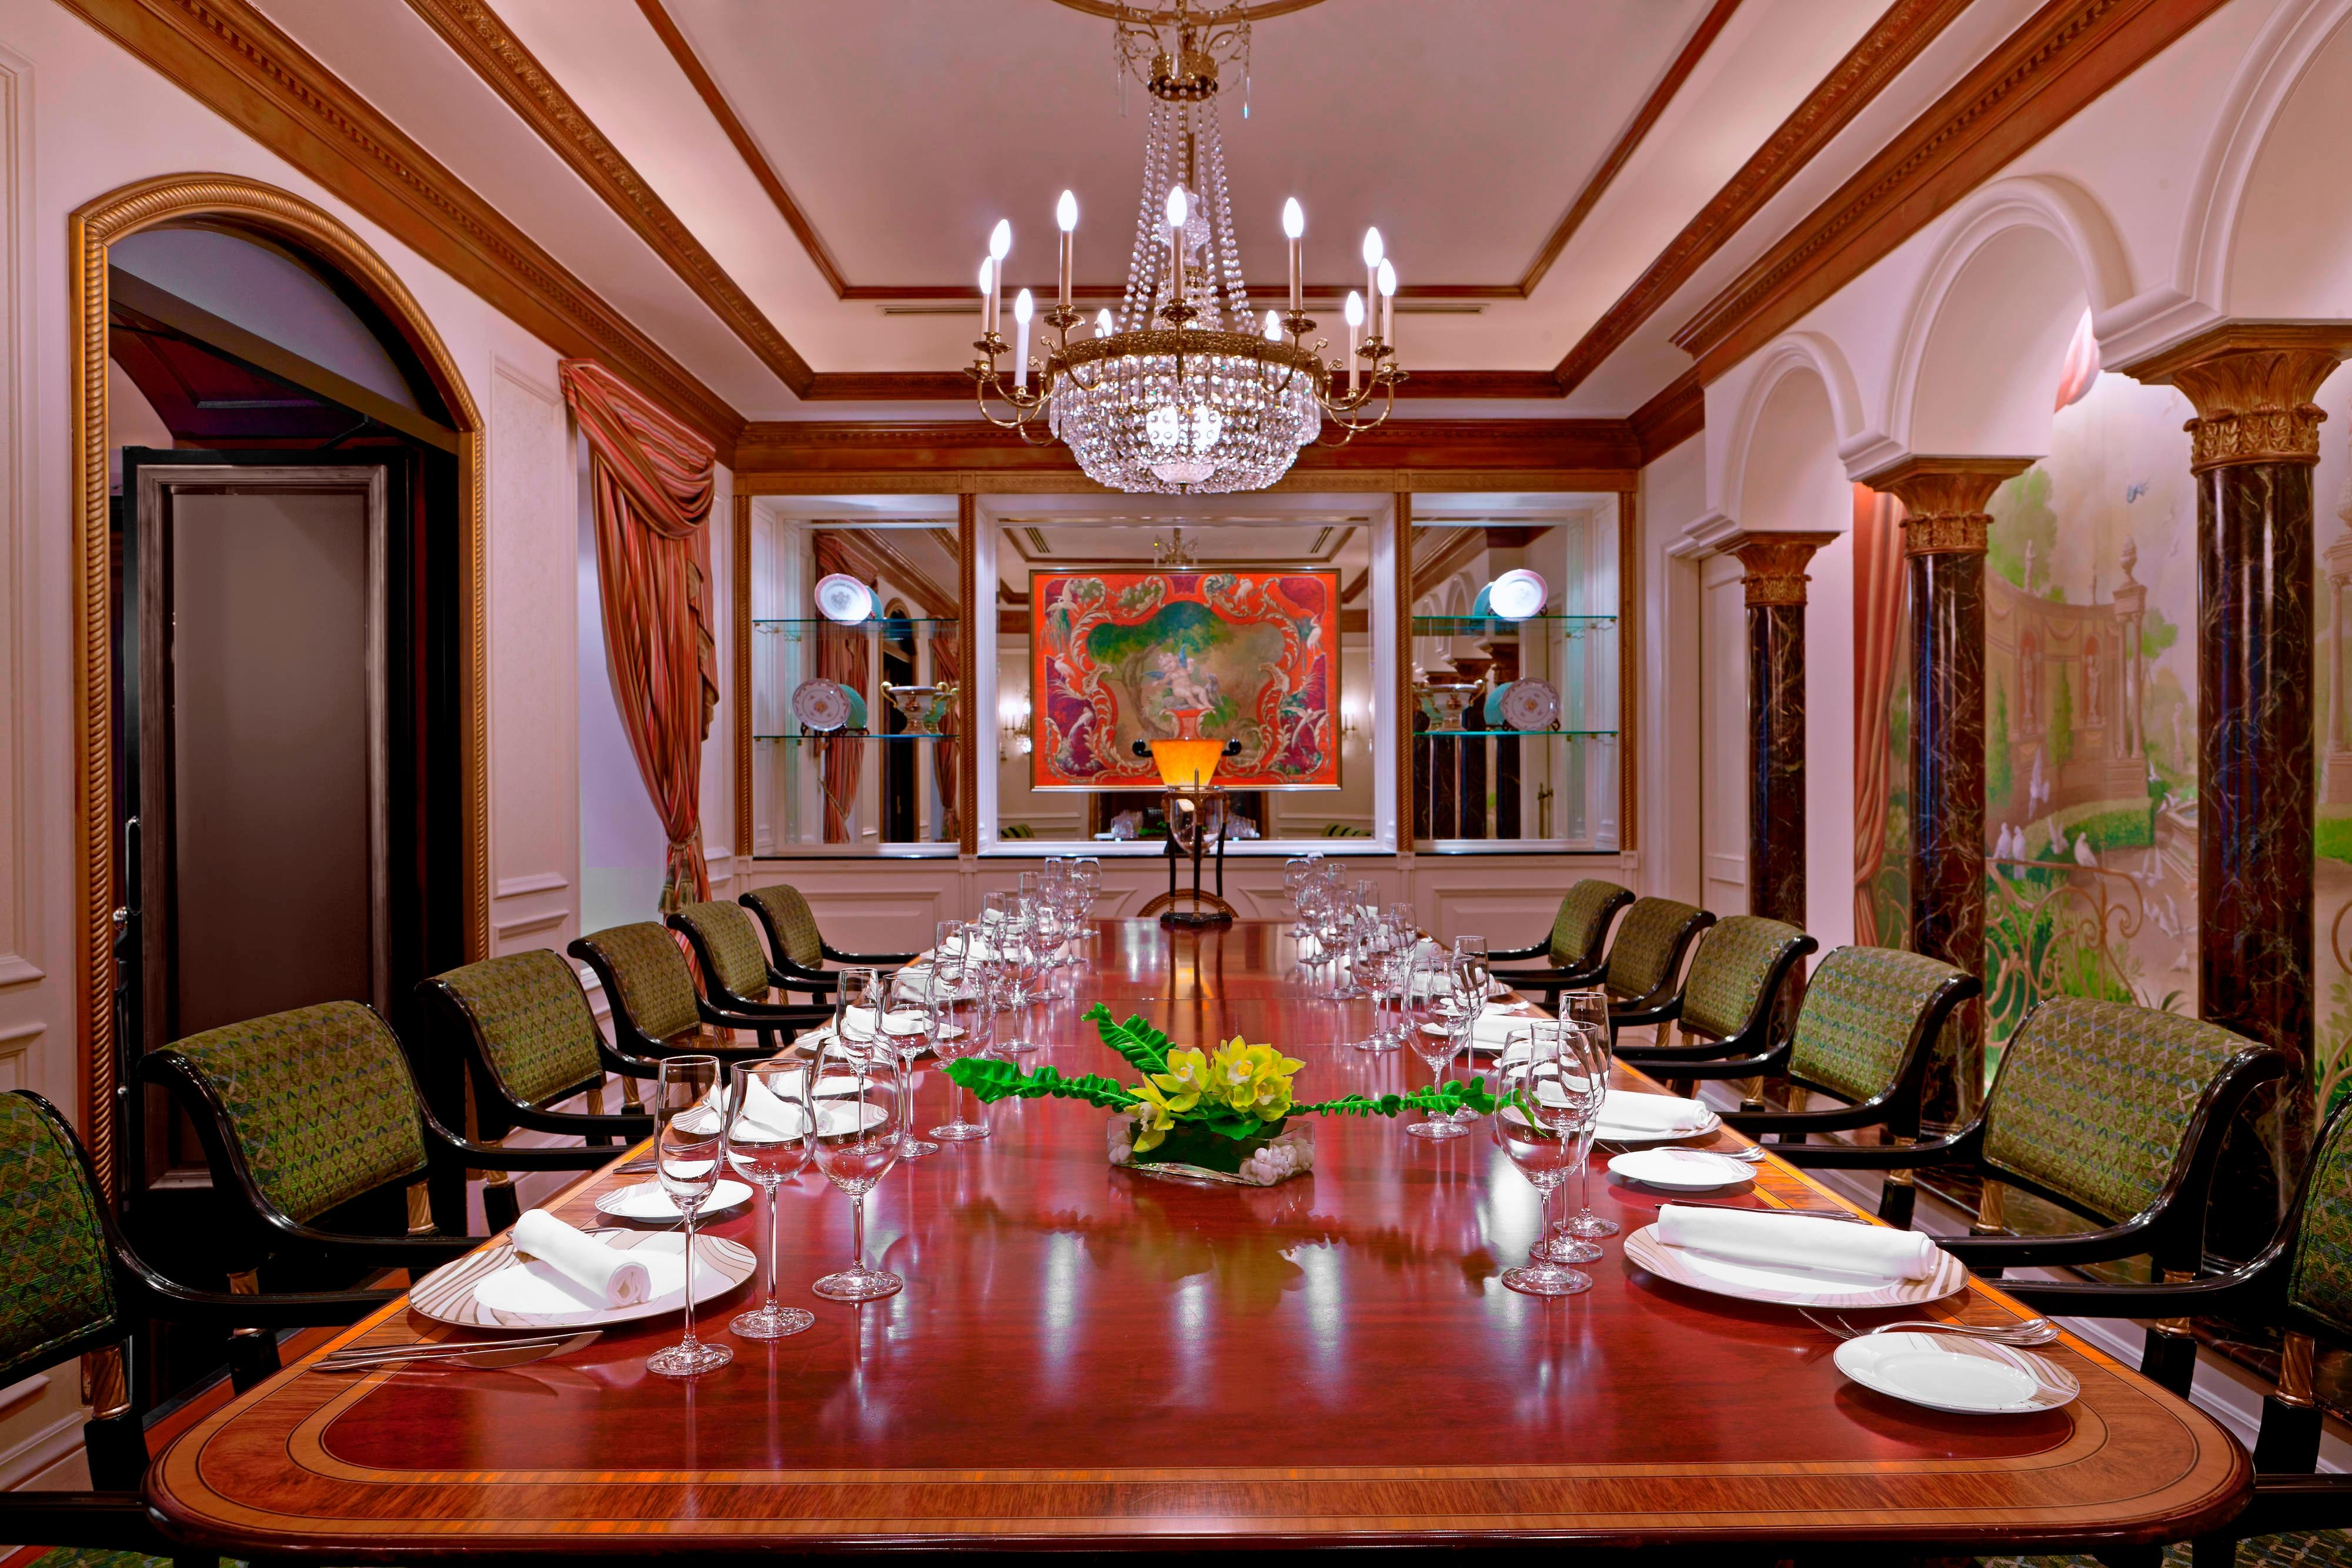 Victor s Restaurant - Private Dining Room